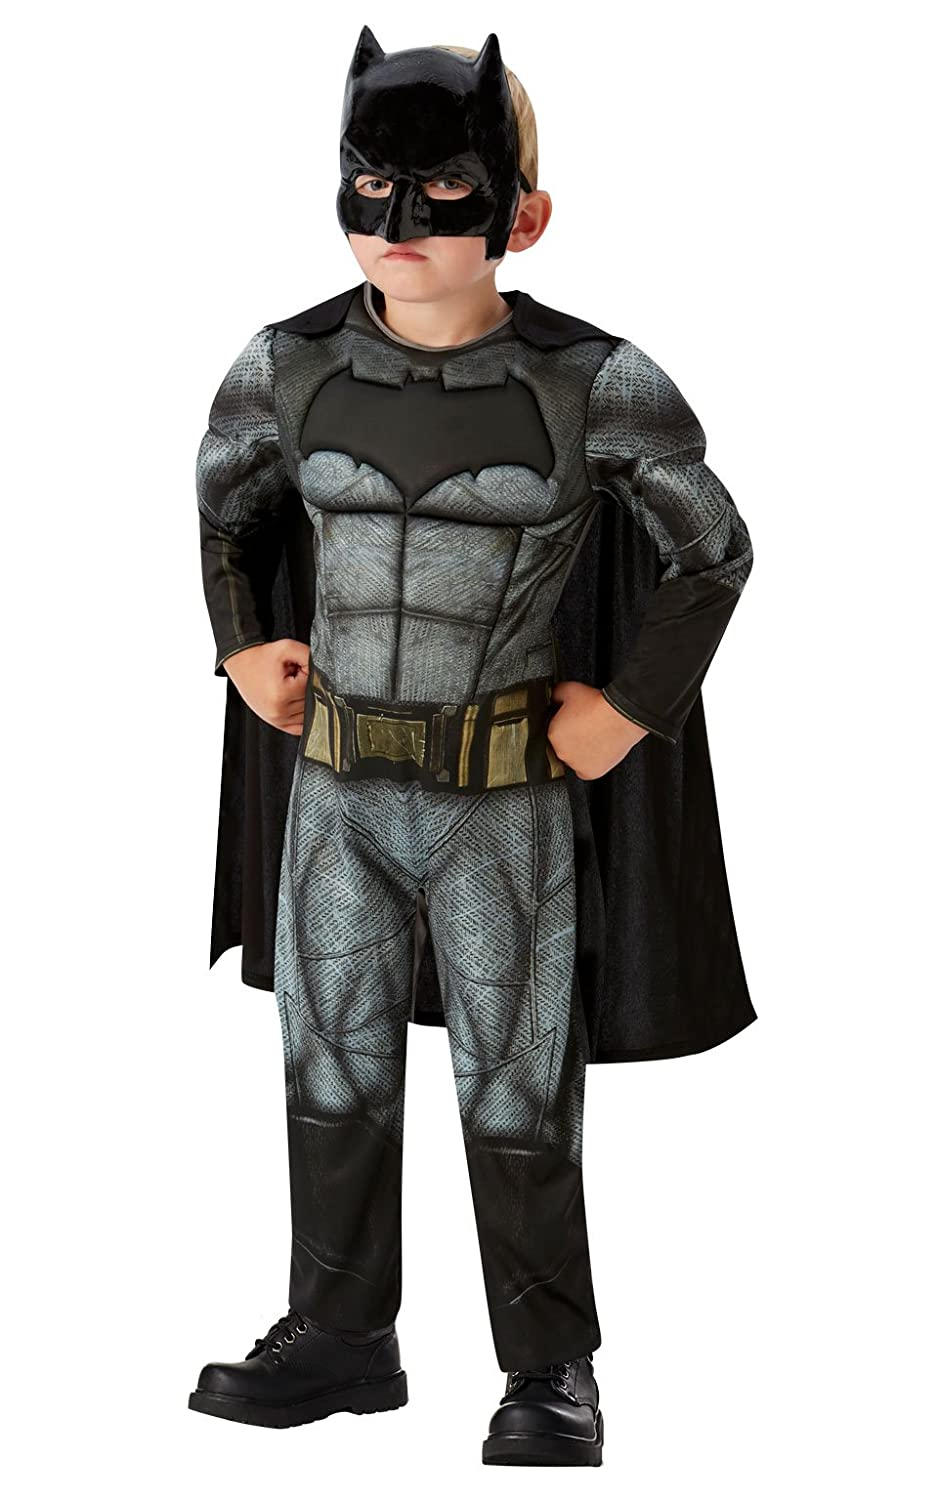 DC - Justice League Movie Disfraz Batman Deluxe Infantil, S (Rubies Spain 640809-S): Amazon.es: Juguetes y juegos